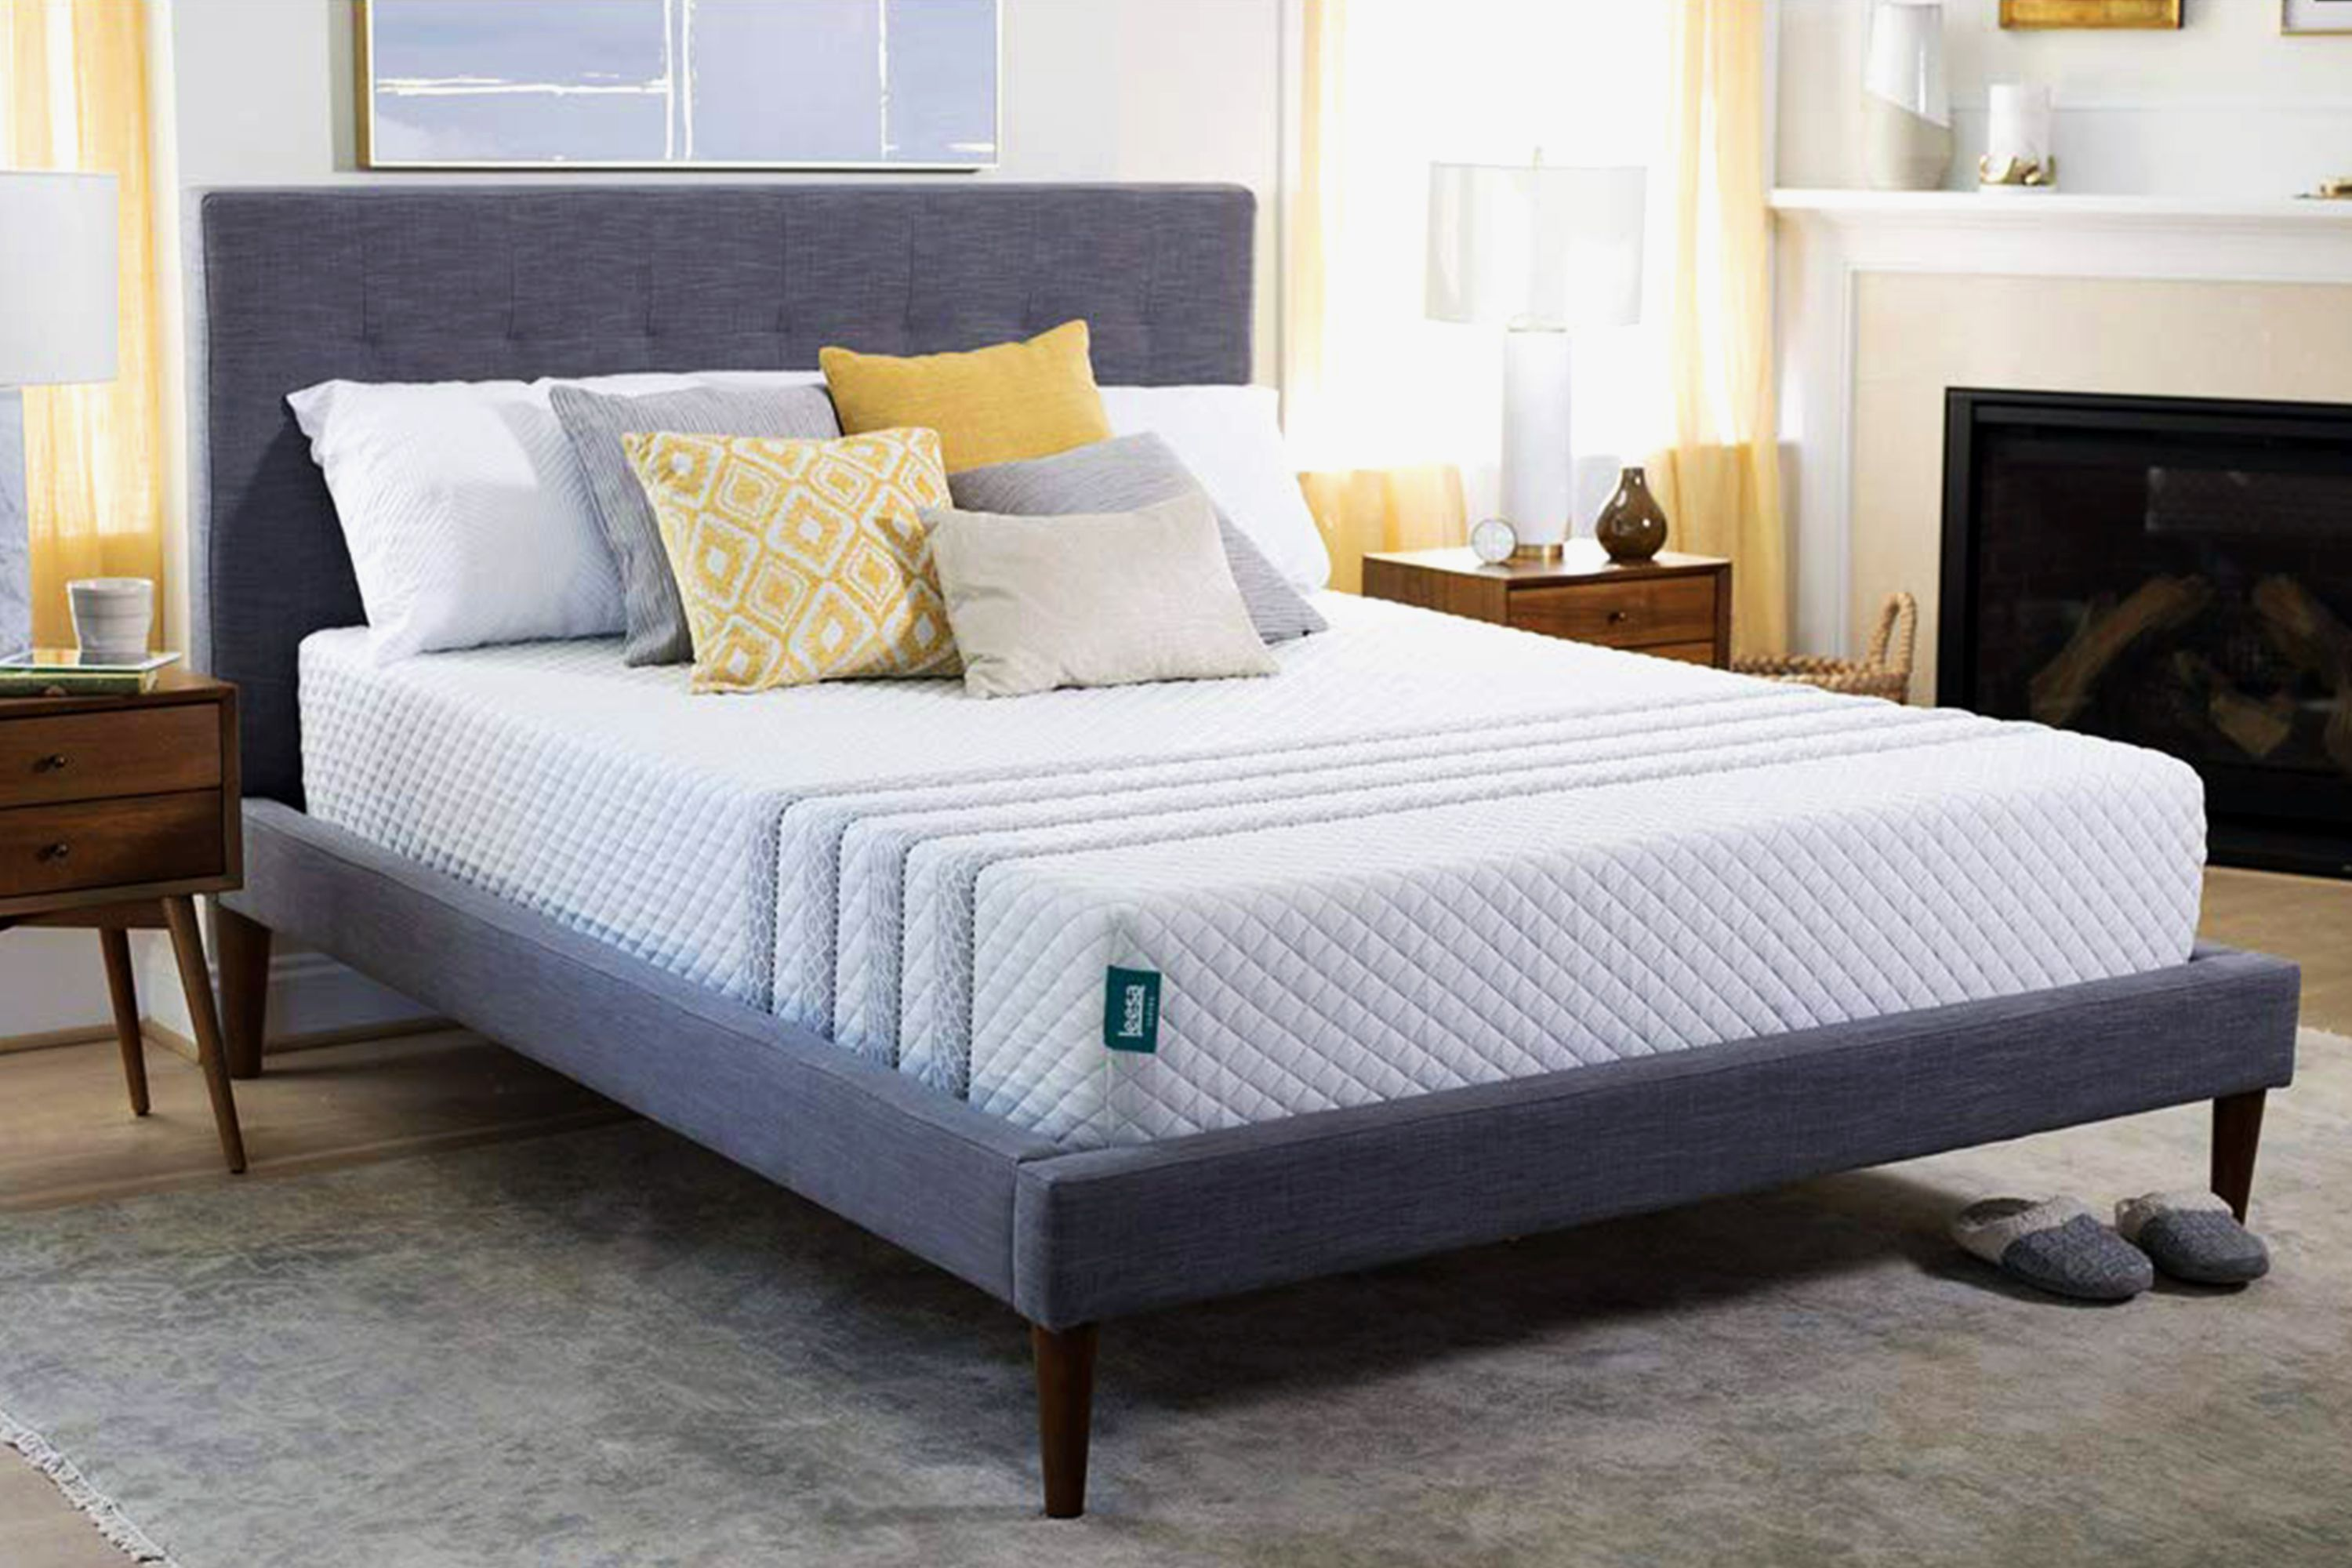 9 Best Mattress In A Box Brands To Buy In 2019 Bed In A